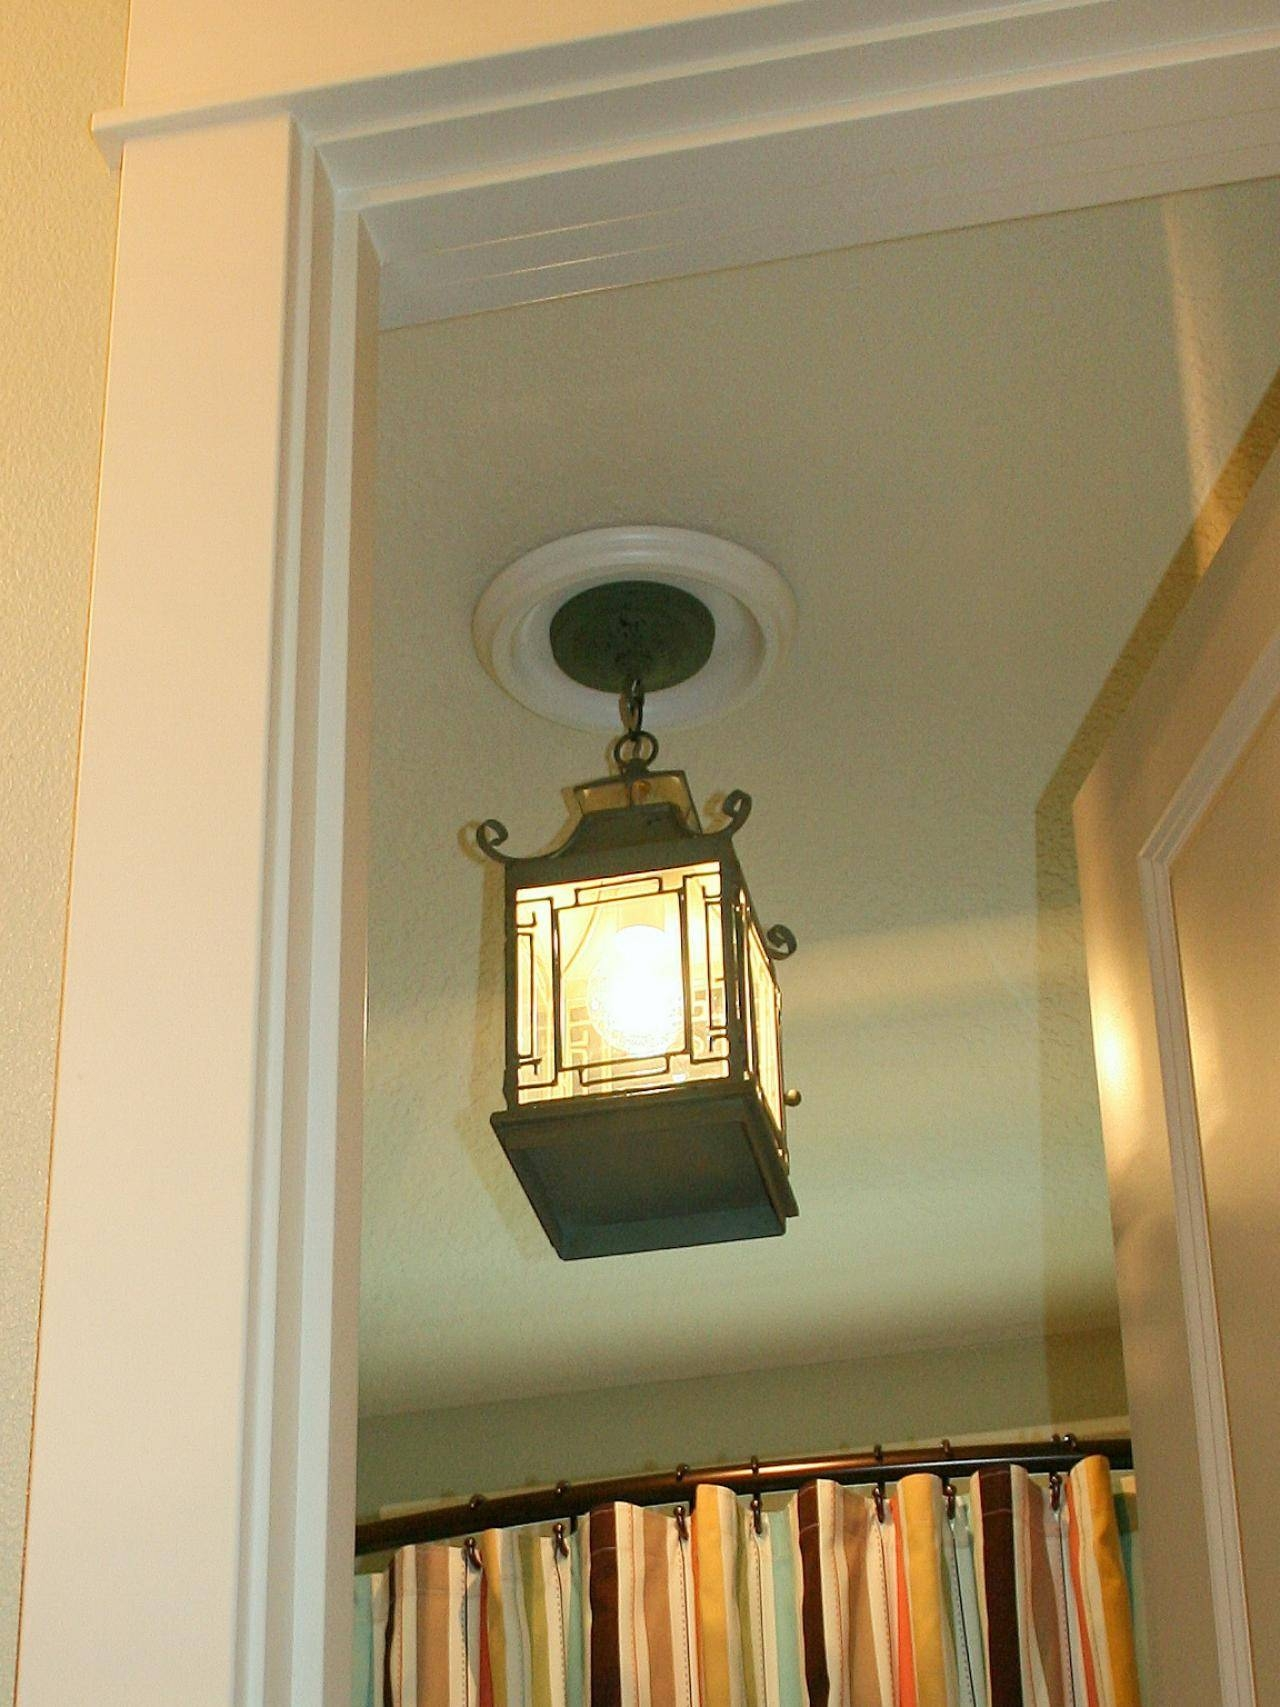 Replace Recessed Light With A Pendant Fixture | Hgtv inside Recessed Lights to Pendant Lights (Image 11 of 15)